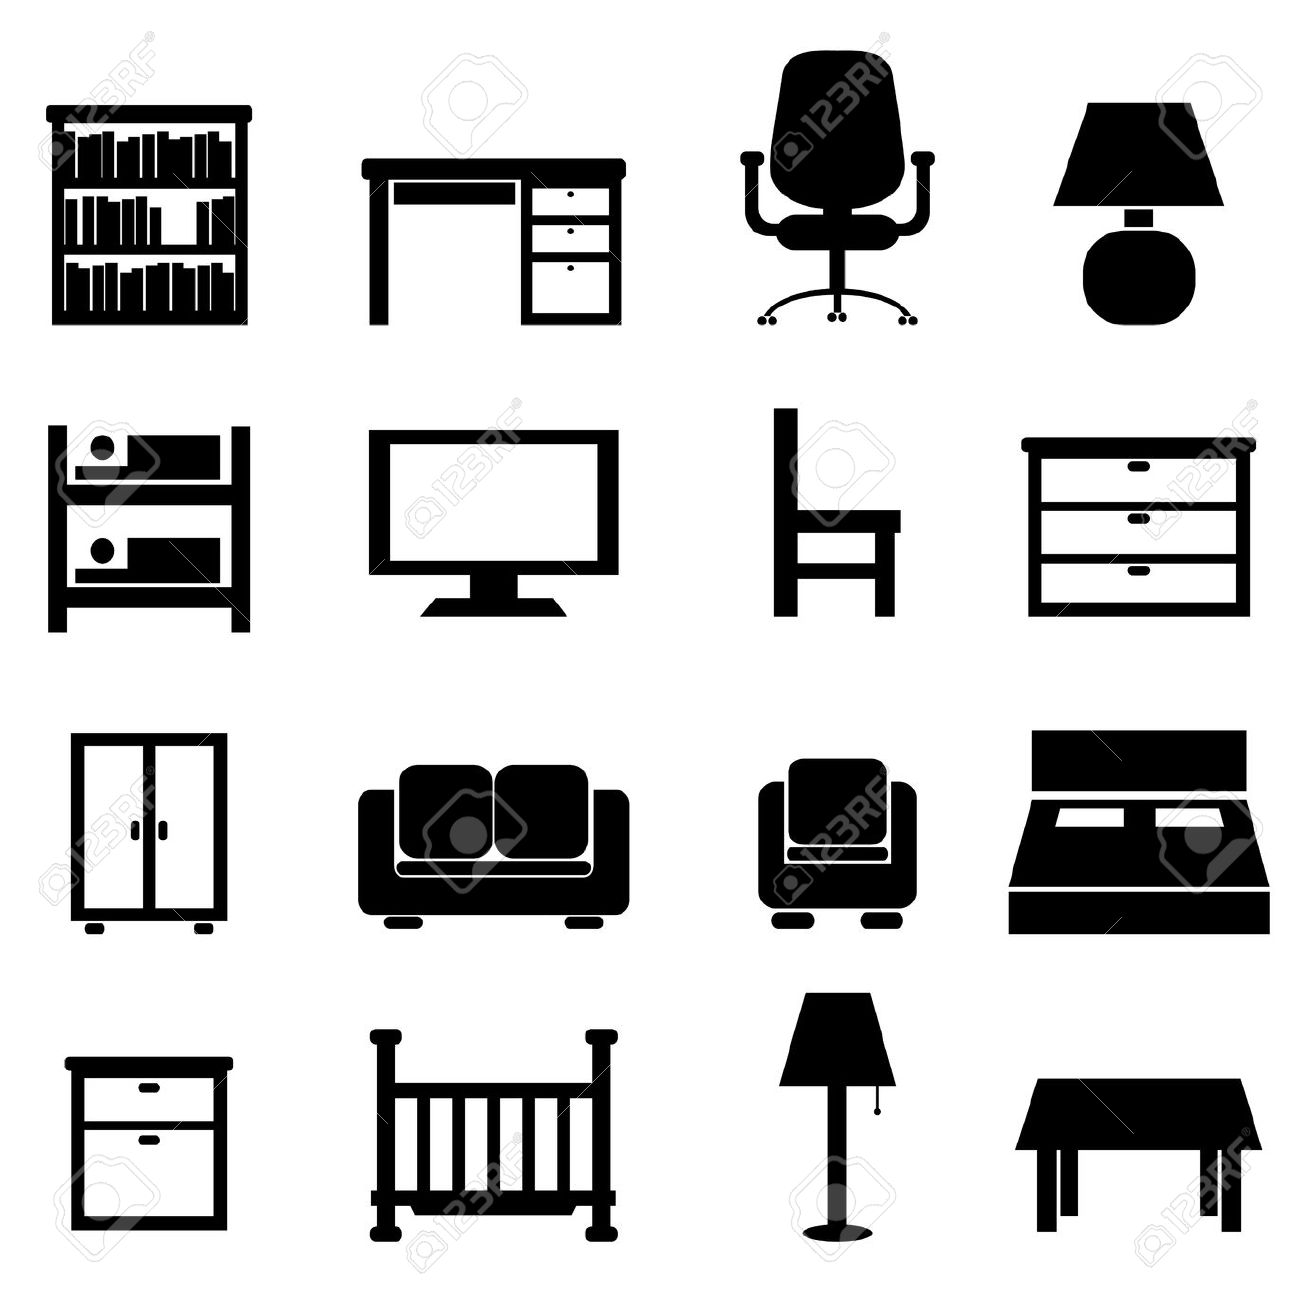 office chair ballet oversized adirondack chairs furniture clipart - clipground